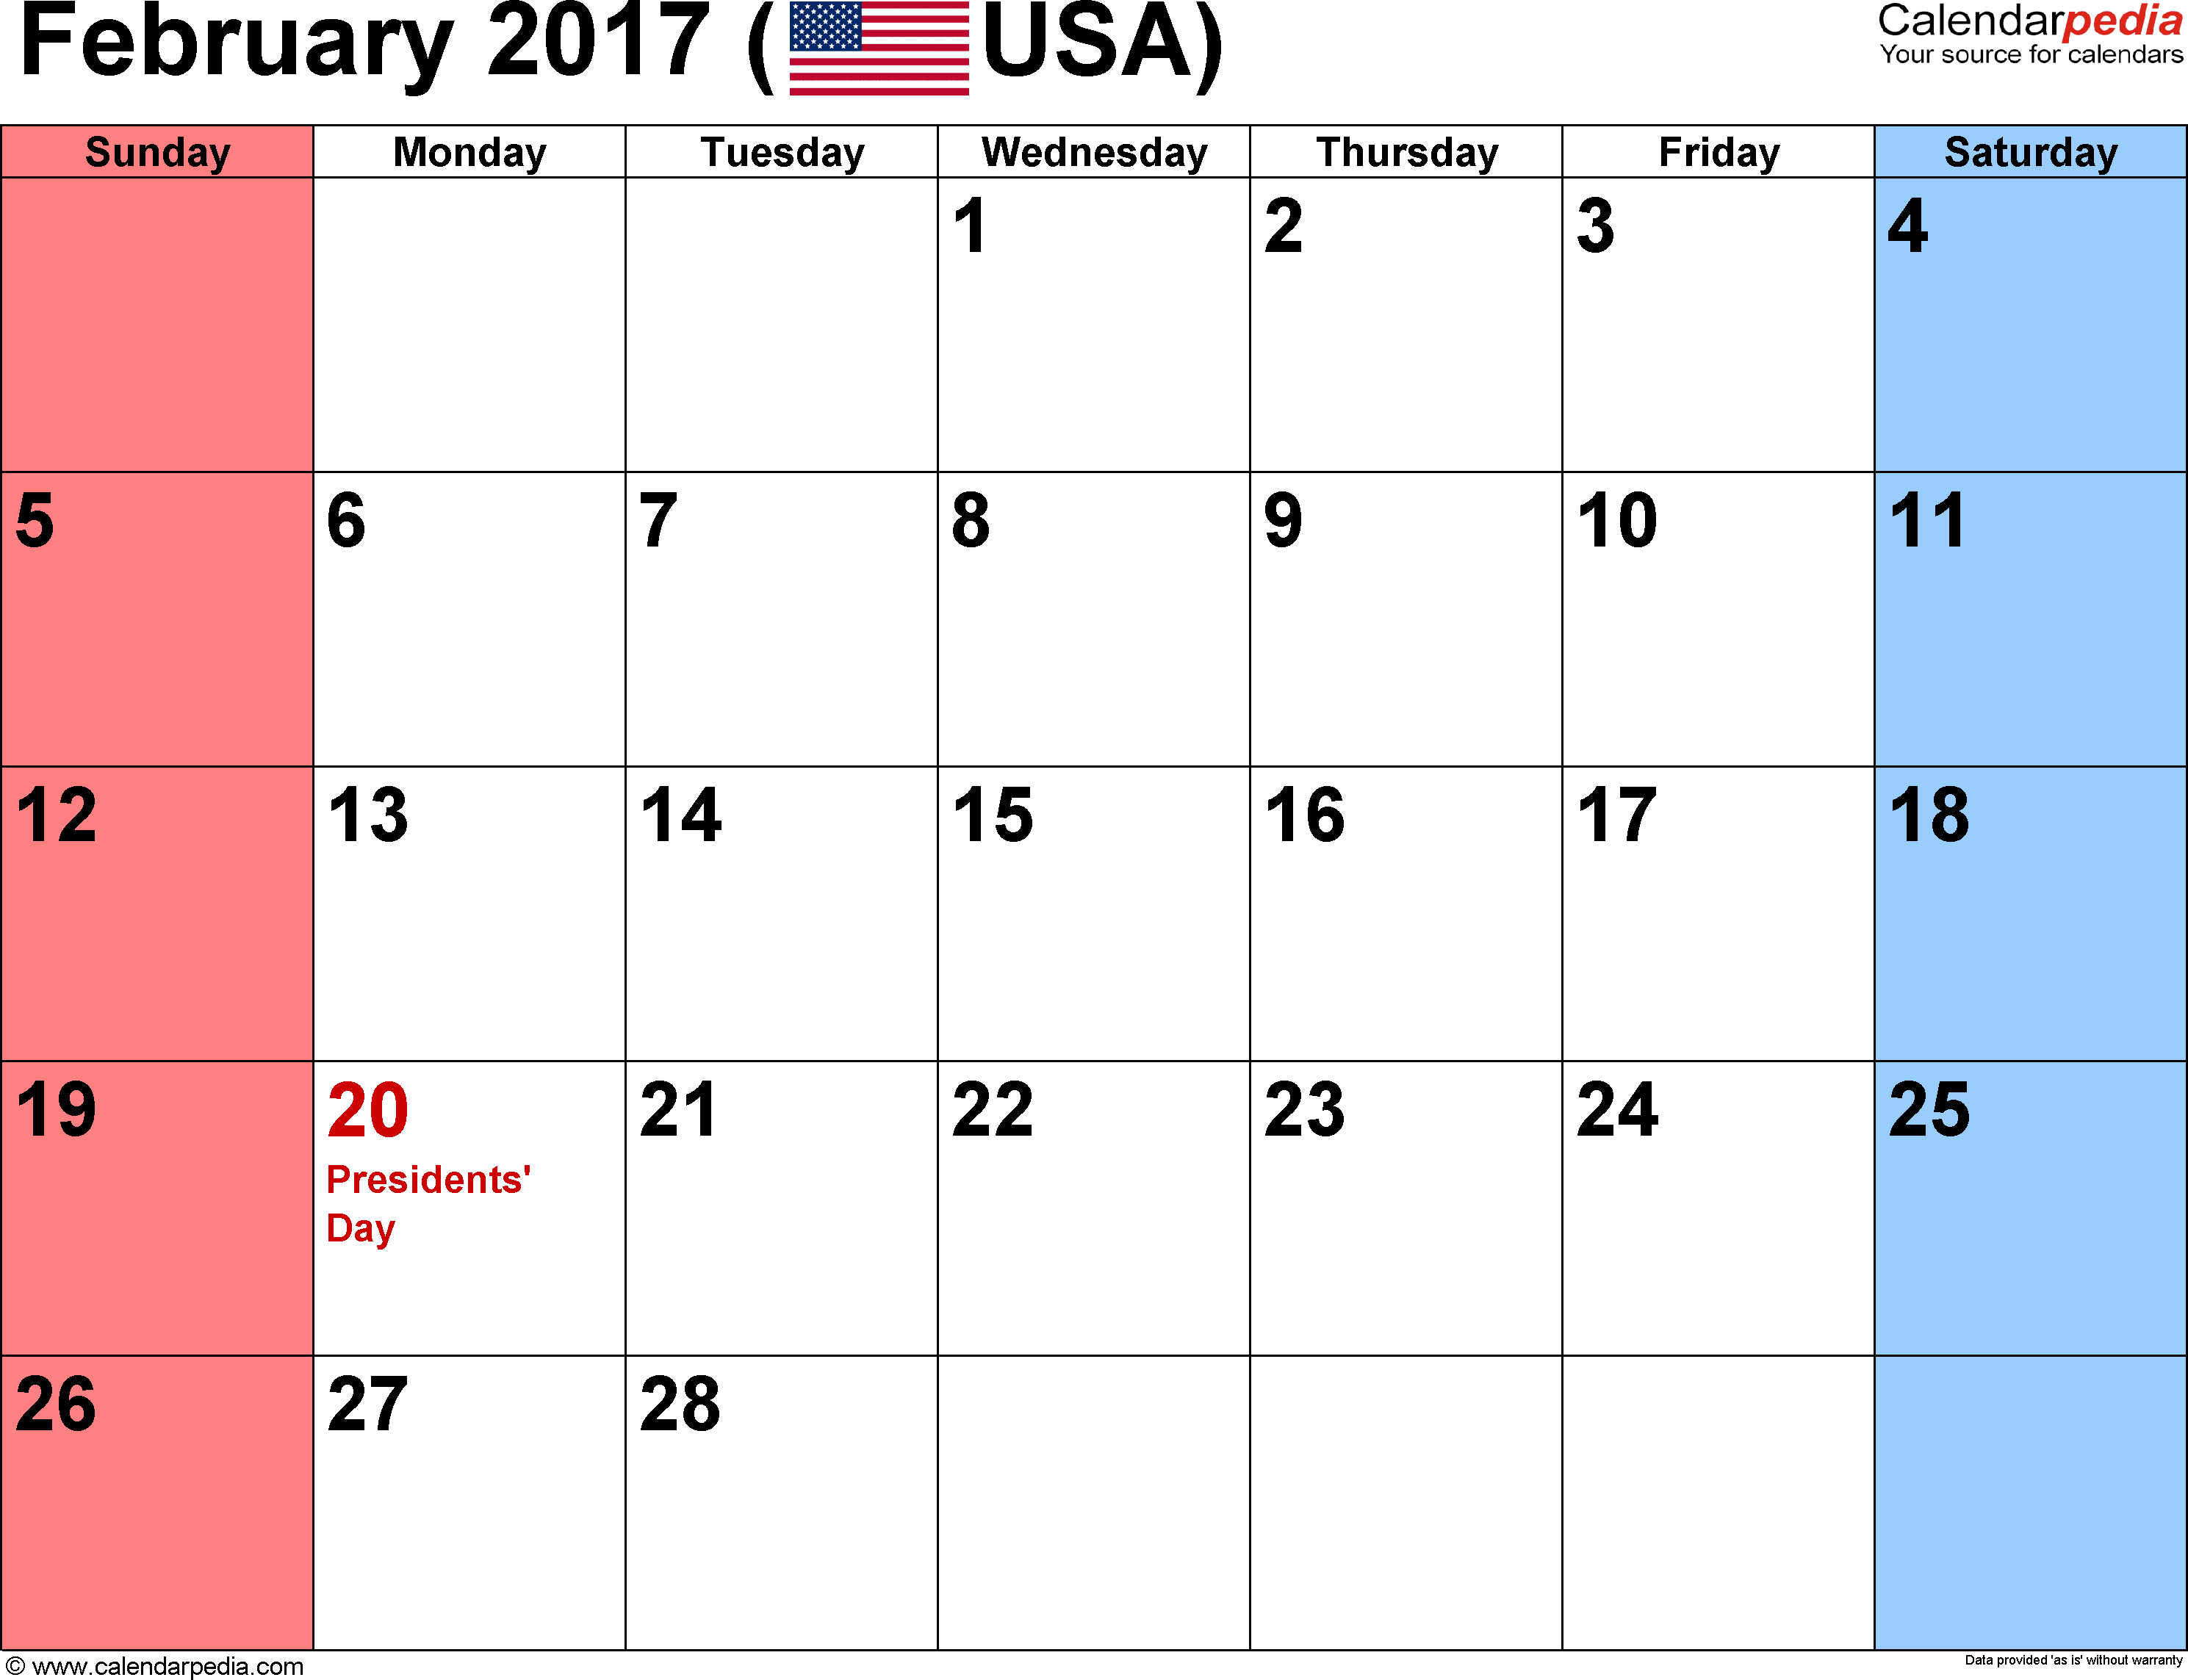 Printable February 2017 Calendar with Holidays - US